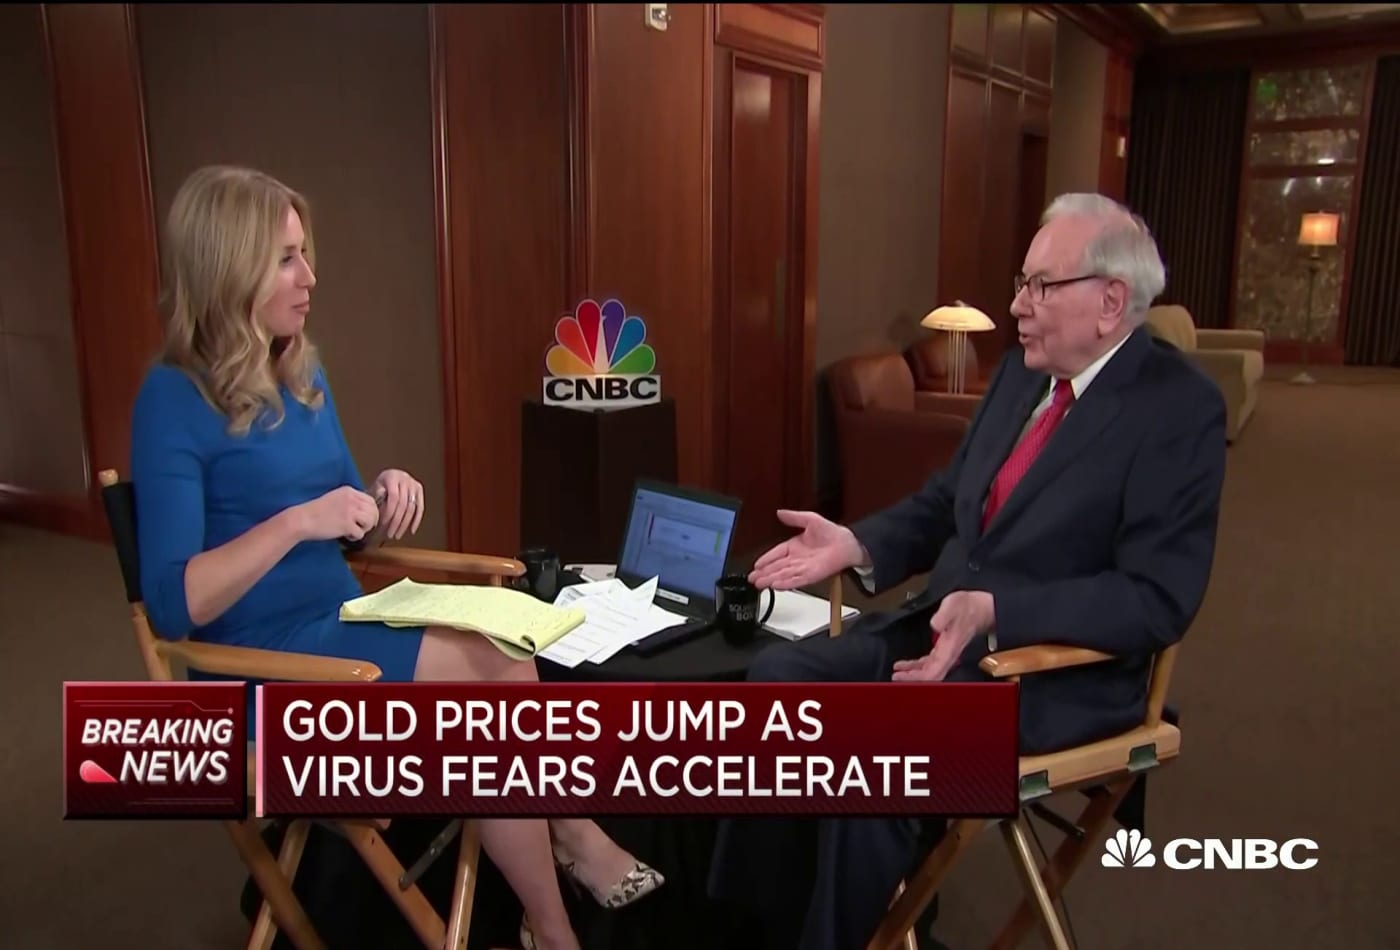 Warren Buffett: Berkshire is worth the same with or without me